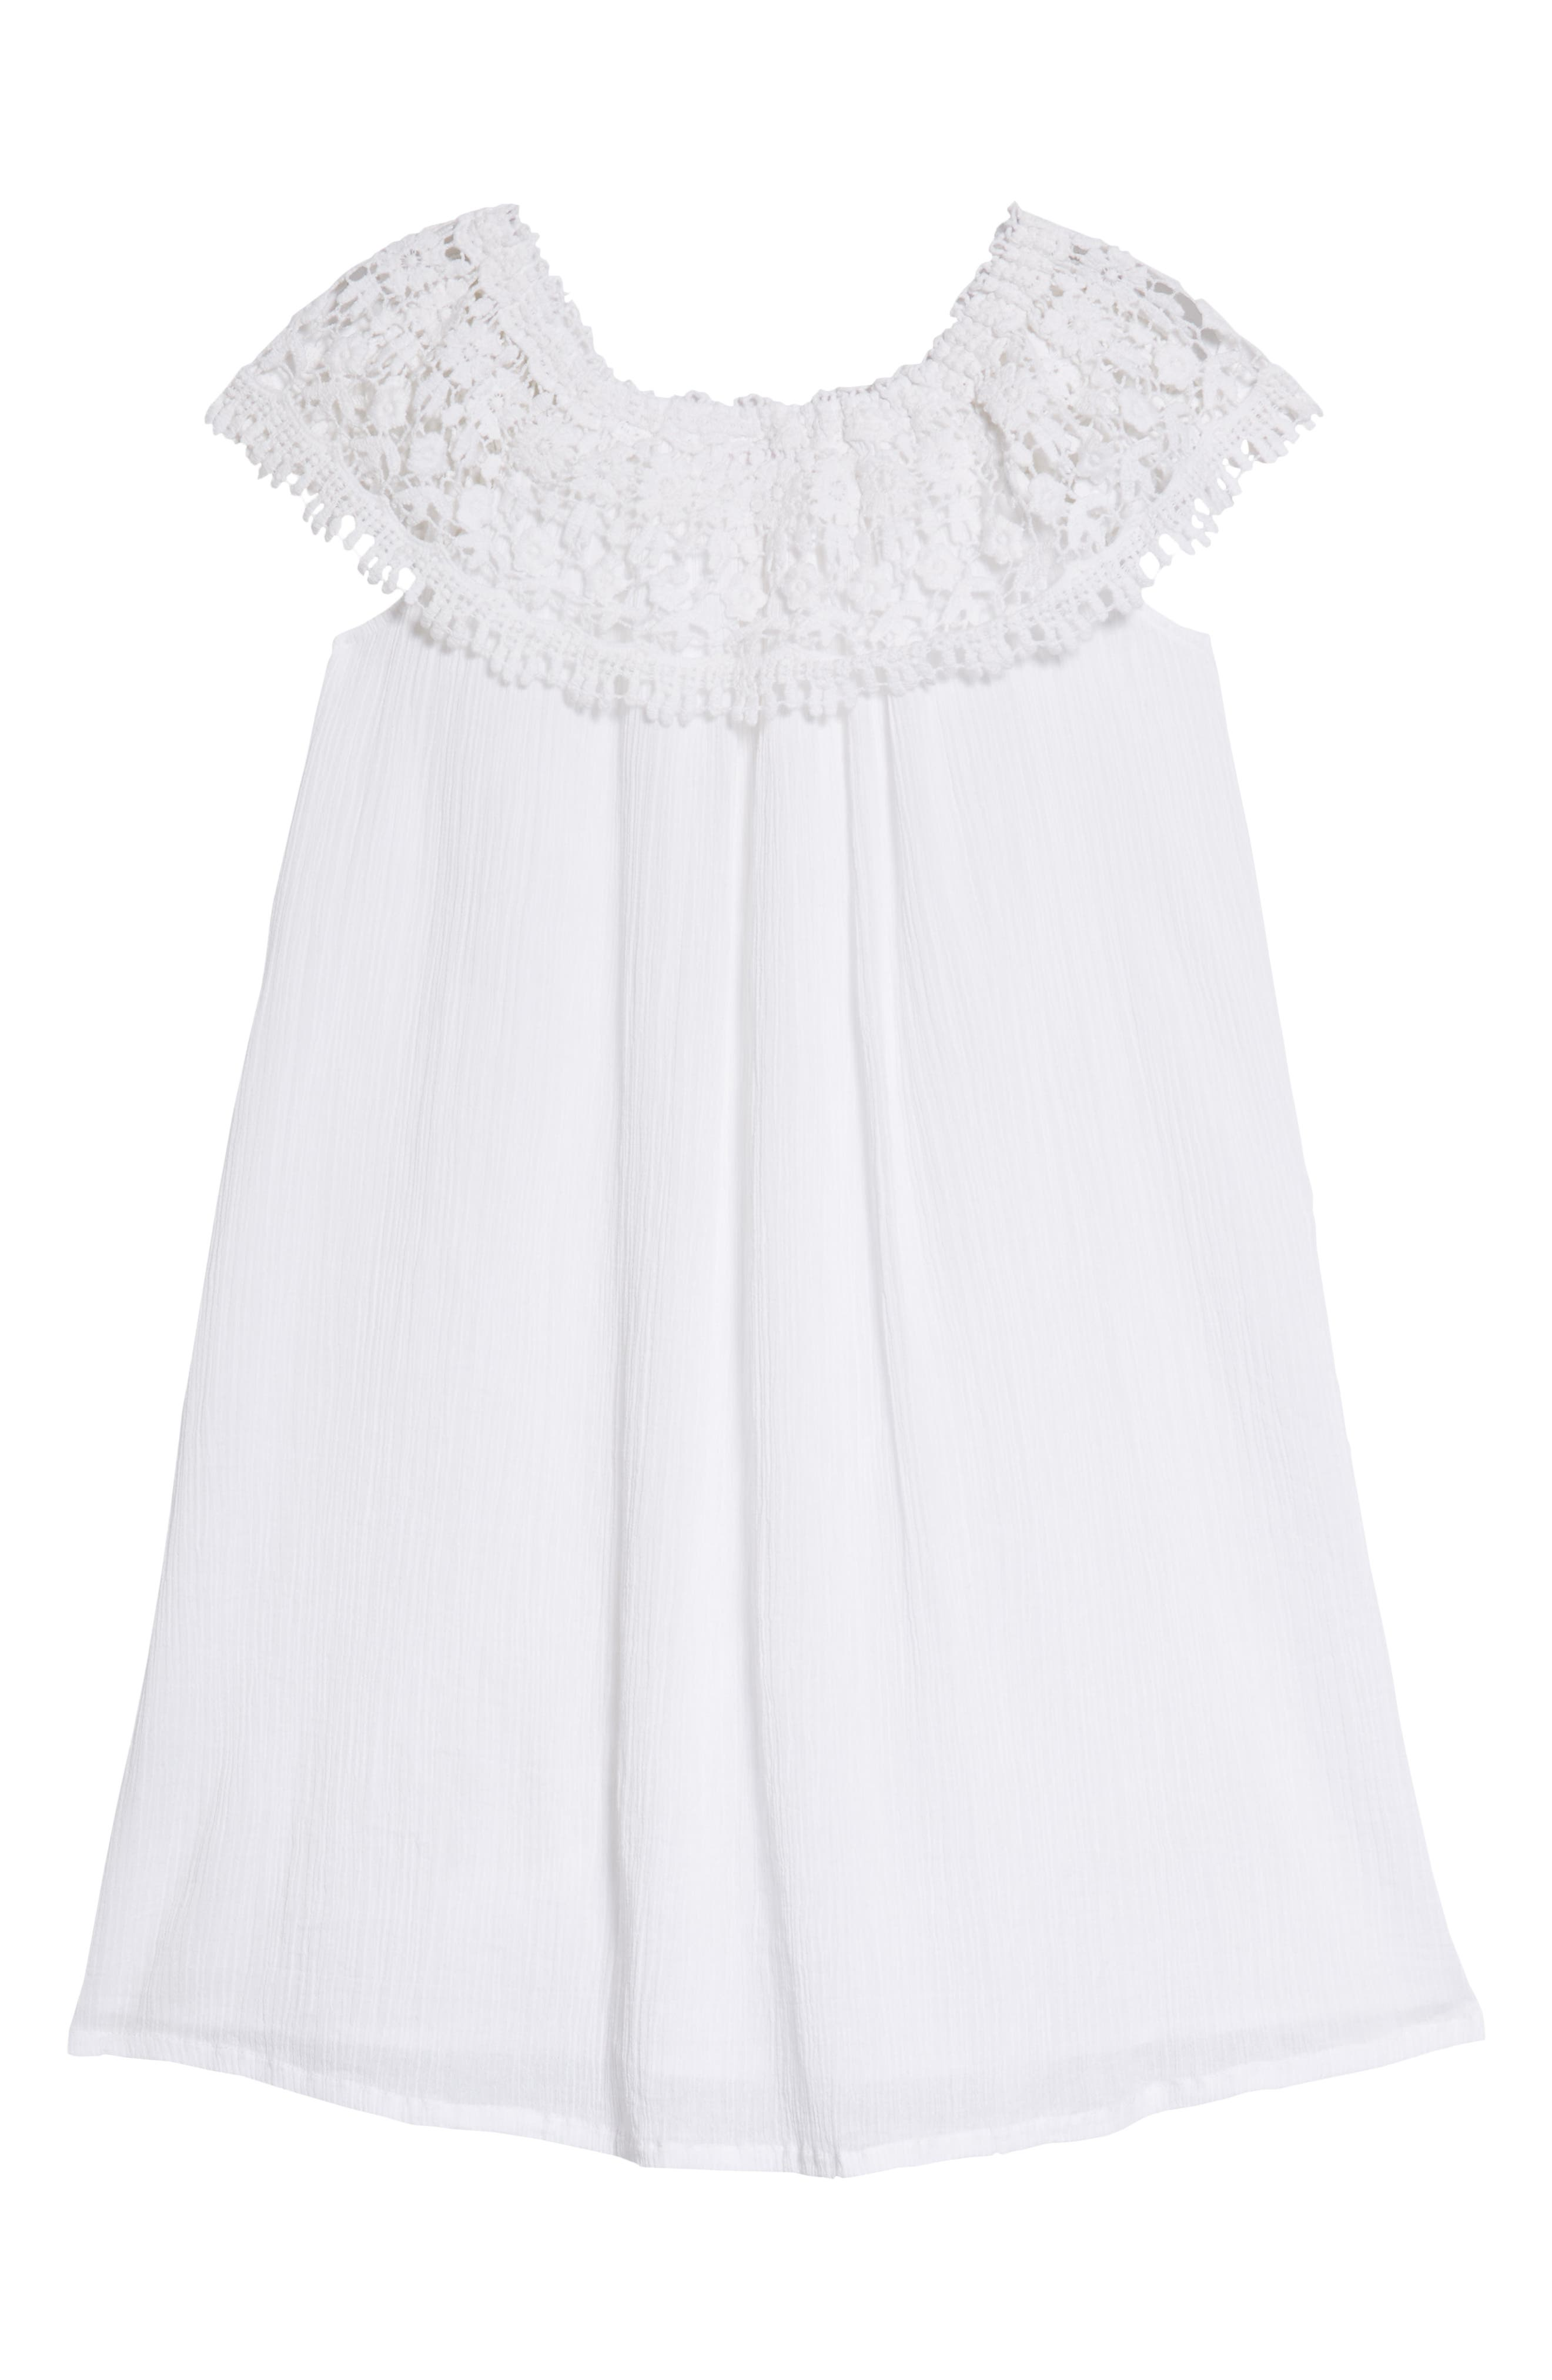 Lace Swing Dress,                             Alternate thumbnail 2, color,